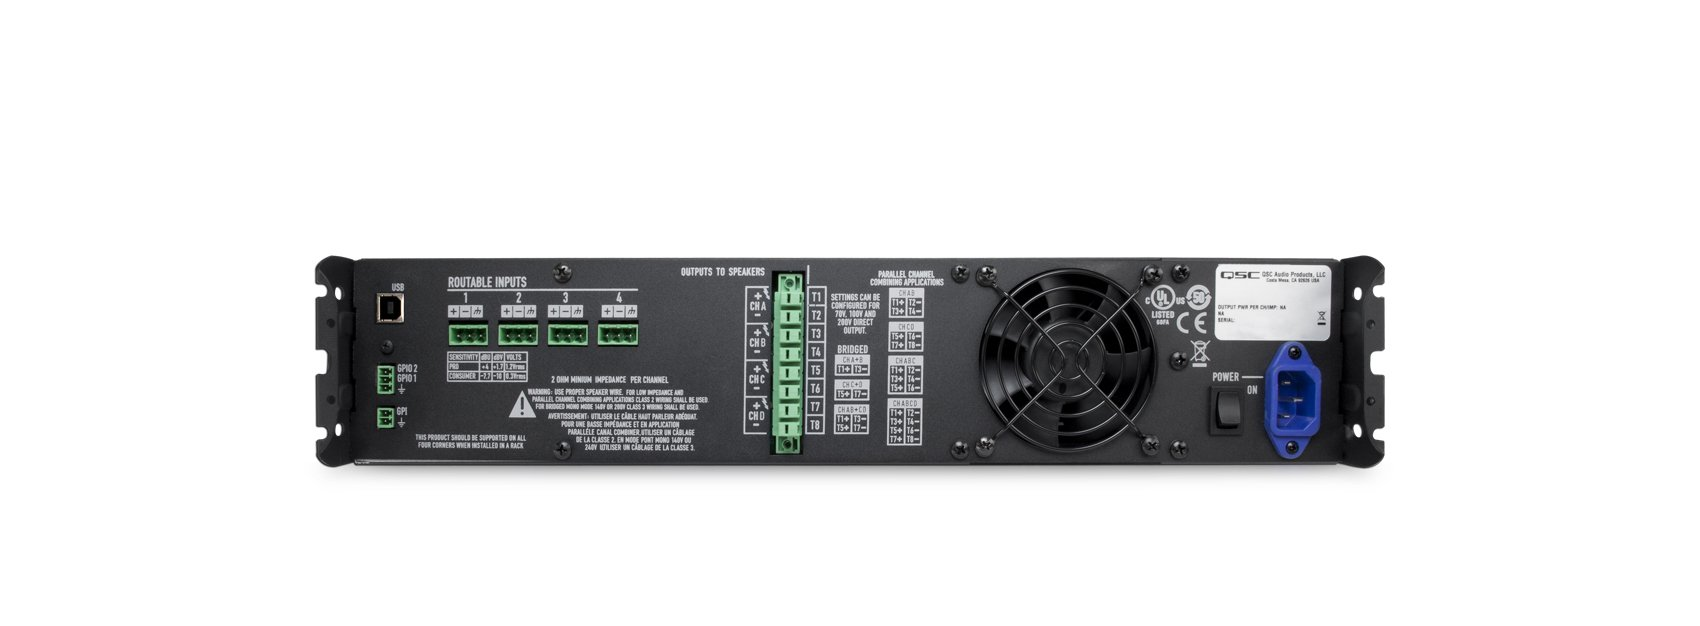 4 Channel 625w 2 8 Ohm Processing Power Amplifier By Qsc Cxd43 Classd Audio Reference Design Nxp Our Part Na Write The First Review